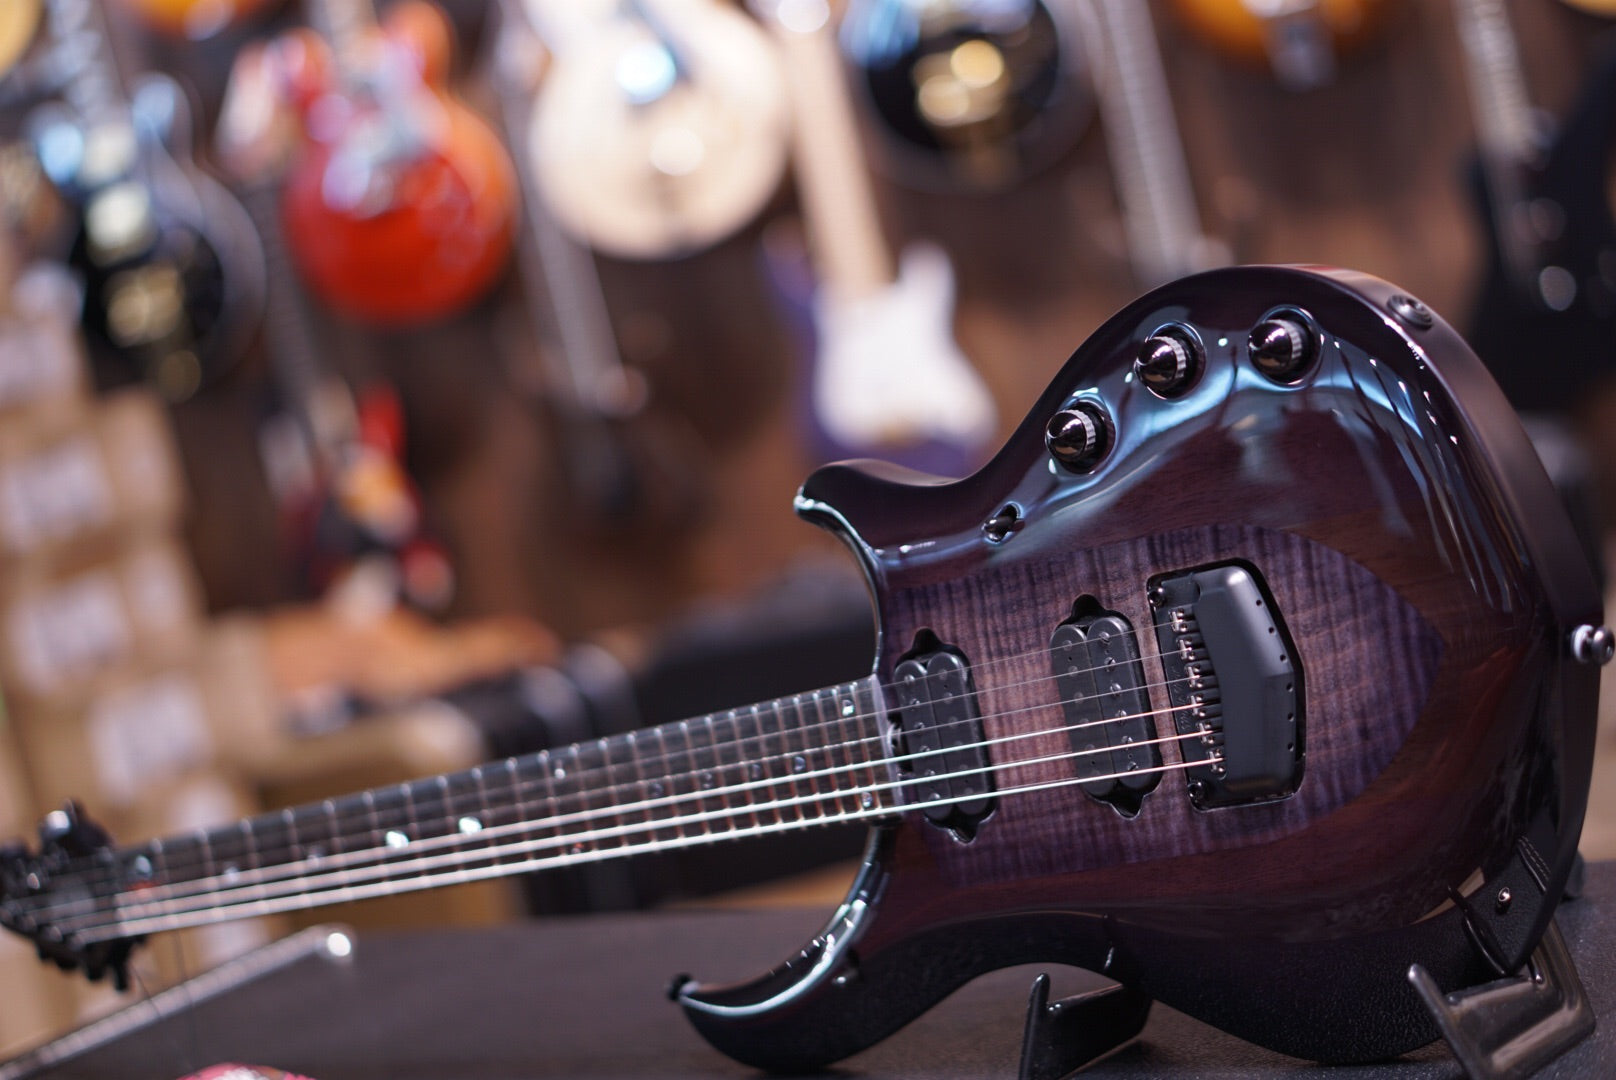 Musicman Majesty monarchy black knight